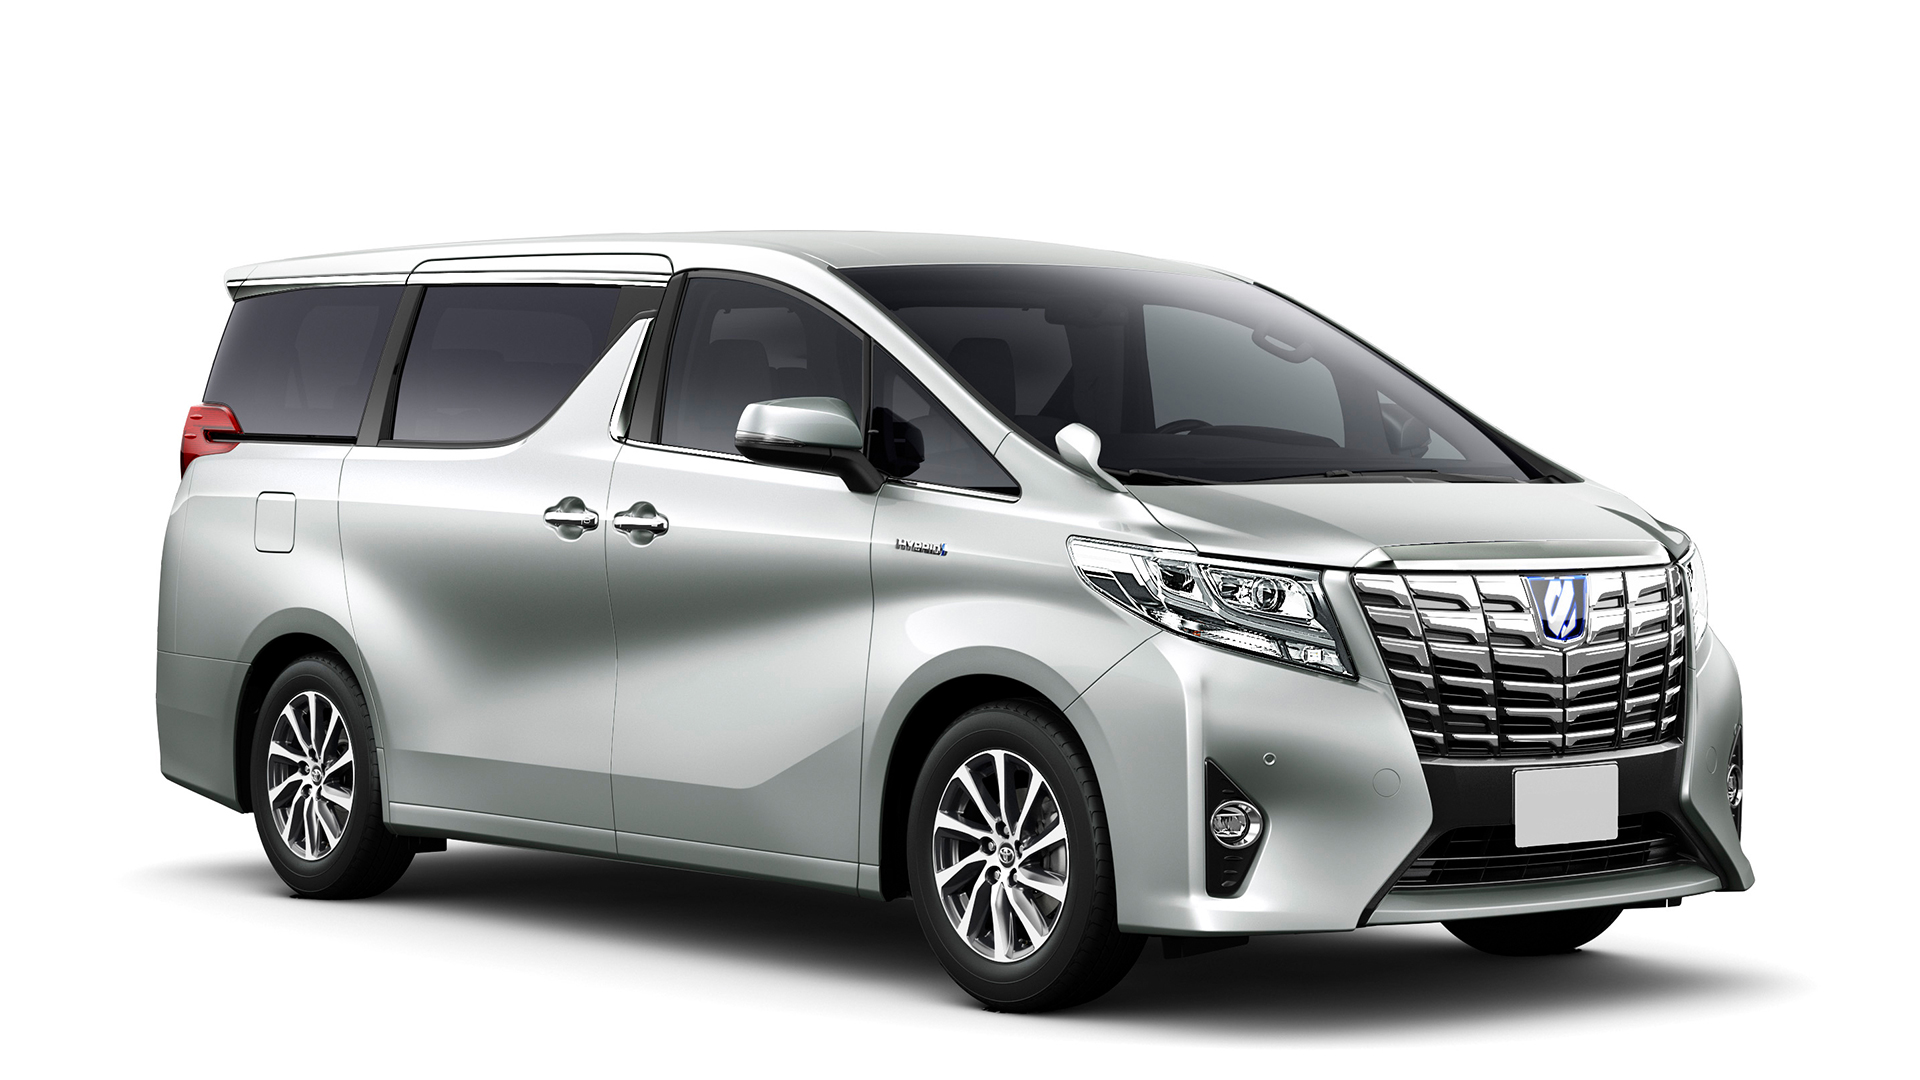 Toyota Latest Models >> Car Models Car Latest Photos Car Reviews Car Specification